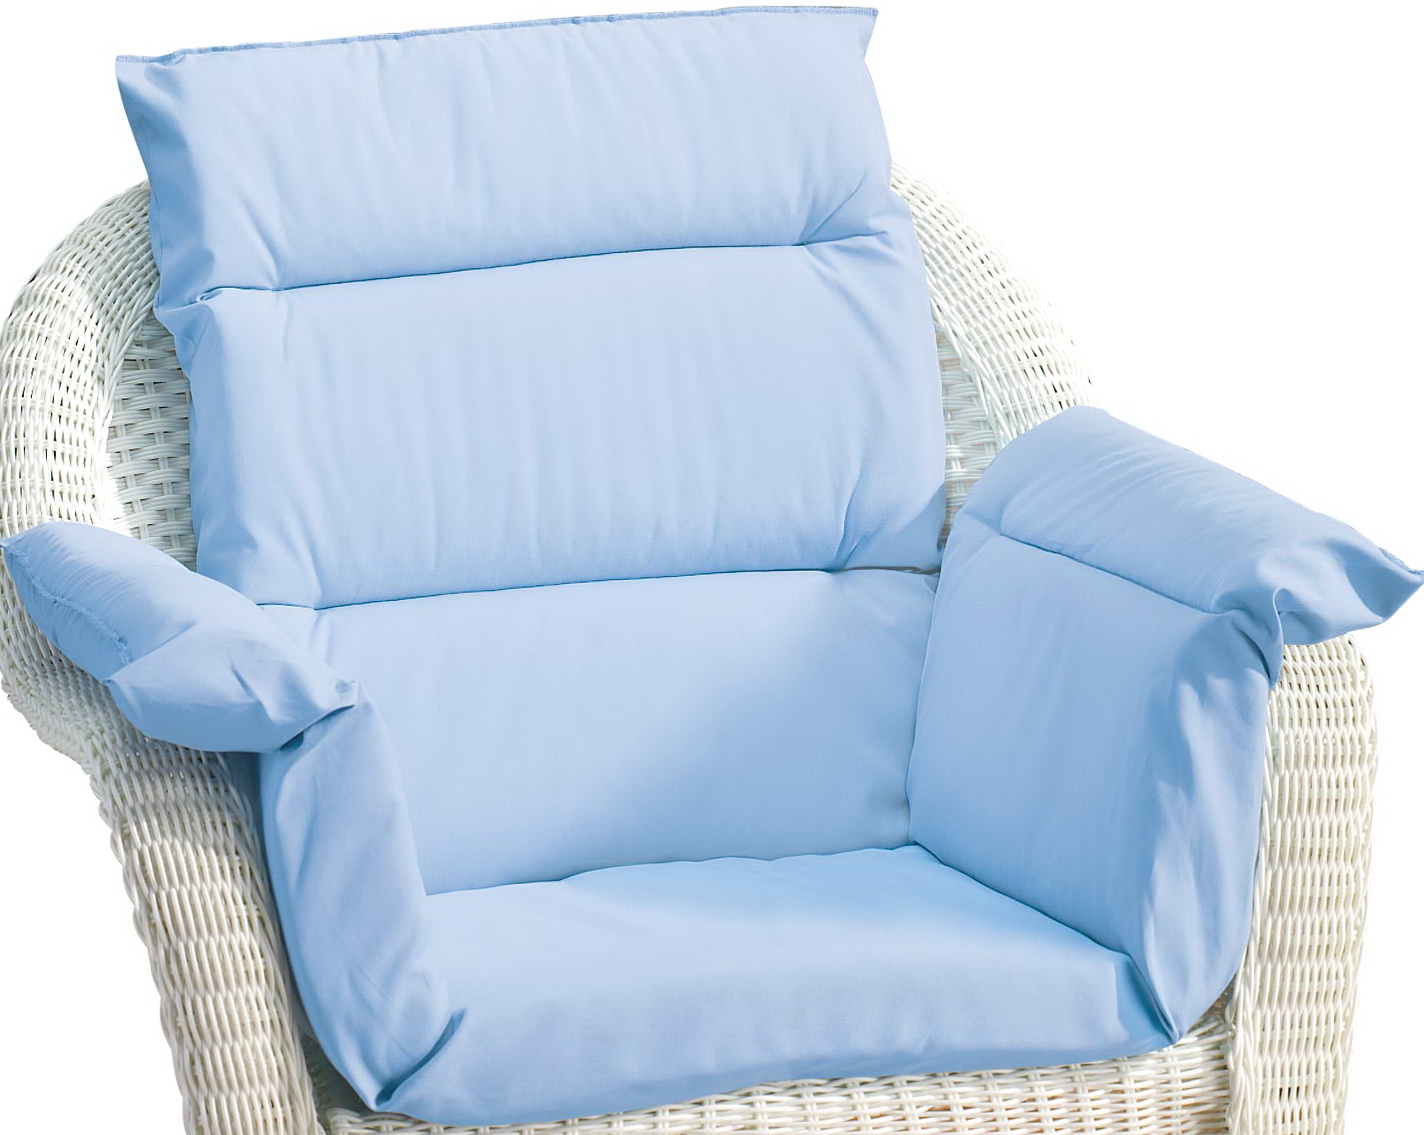 Pressure Relieving Cushion For Chairs